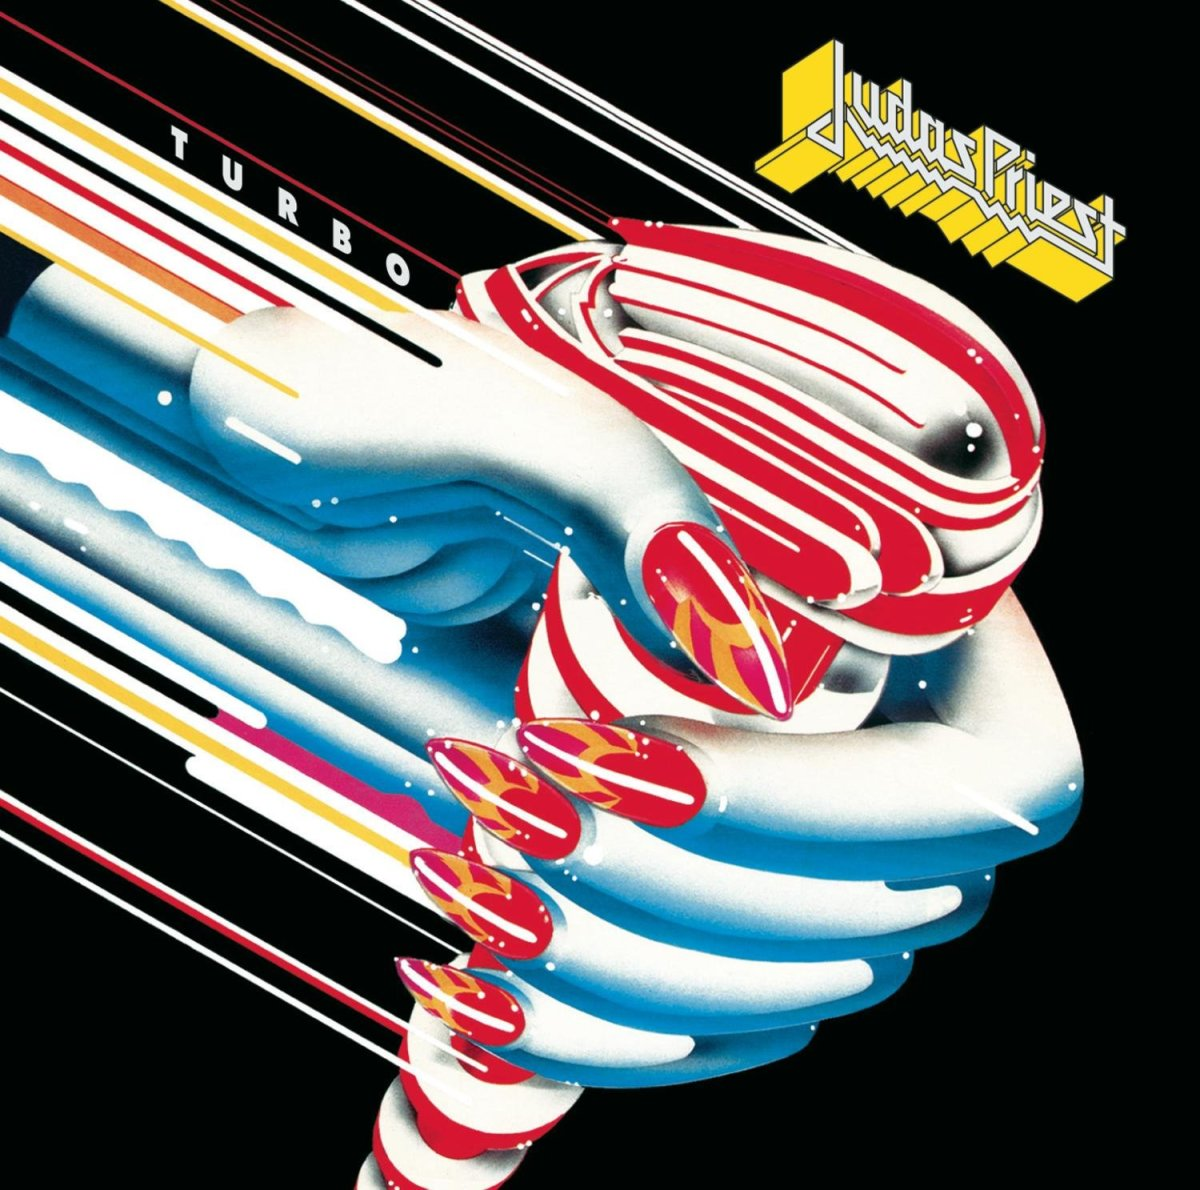 review-of-the-album-turbo-by-british-heavy-metal-band-judas-priest